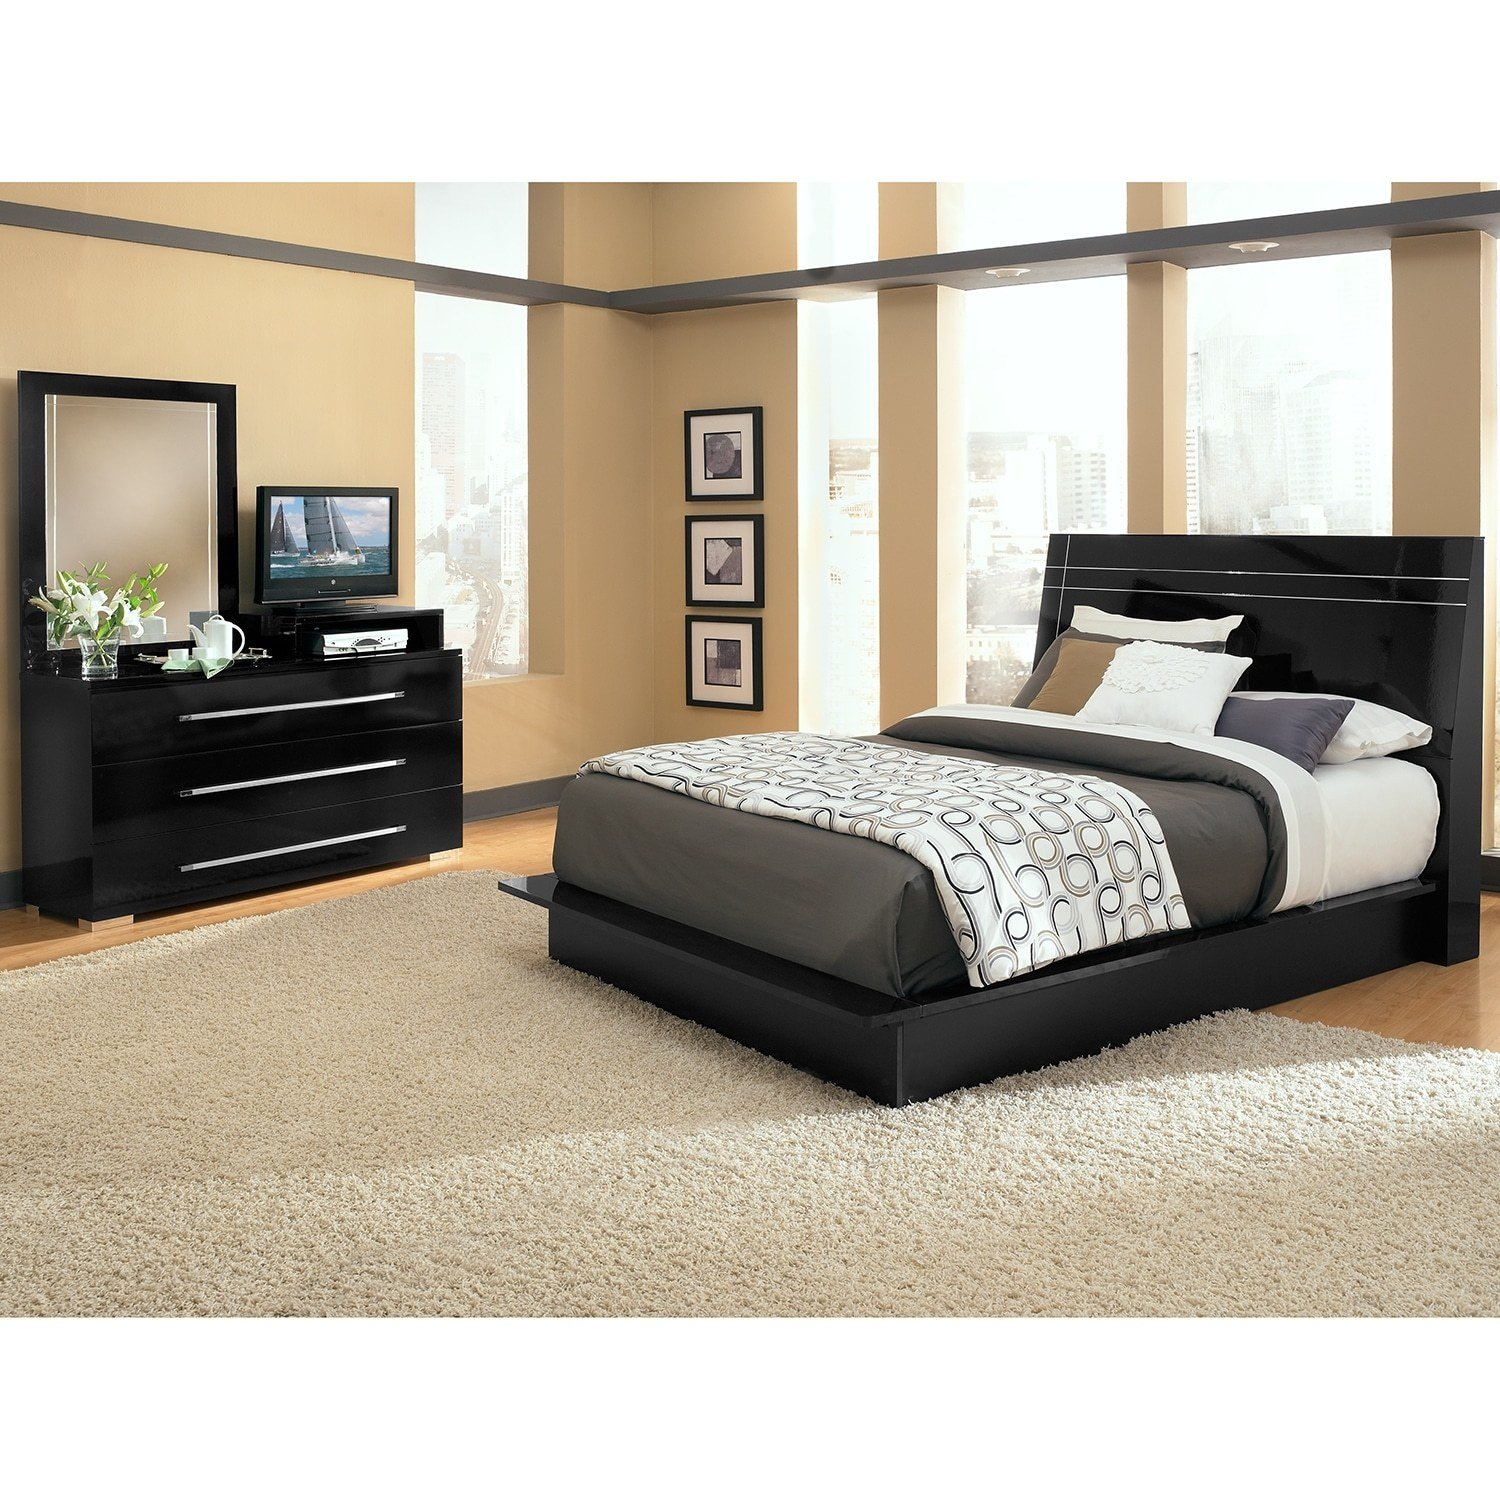 Best Dimora Black Ii 5 Pc Queen Bedroom Value City Furniture With Pictures